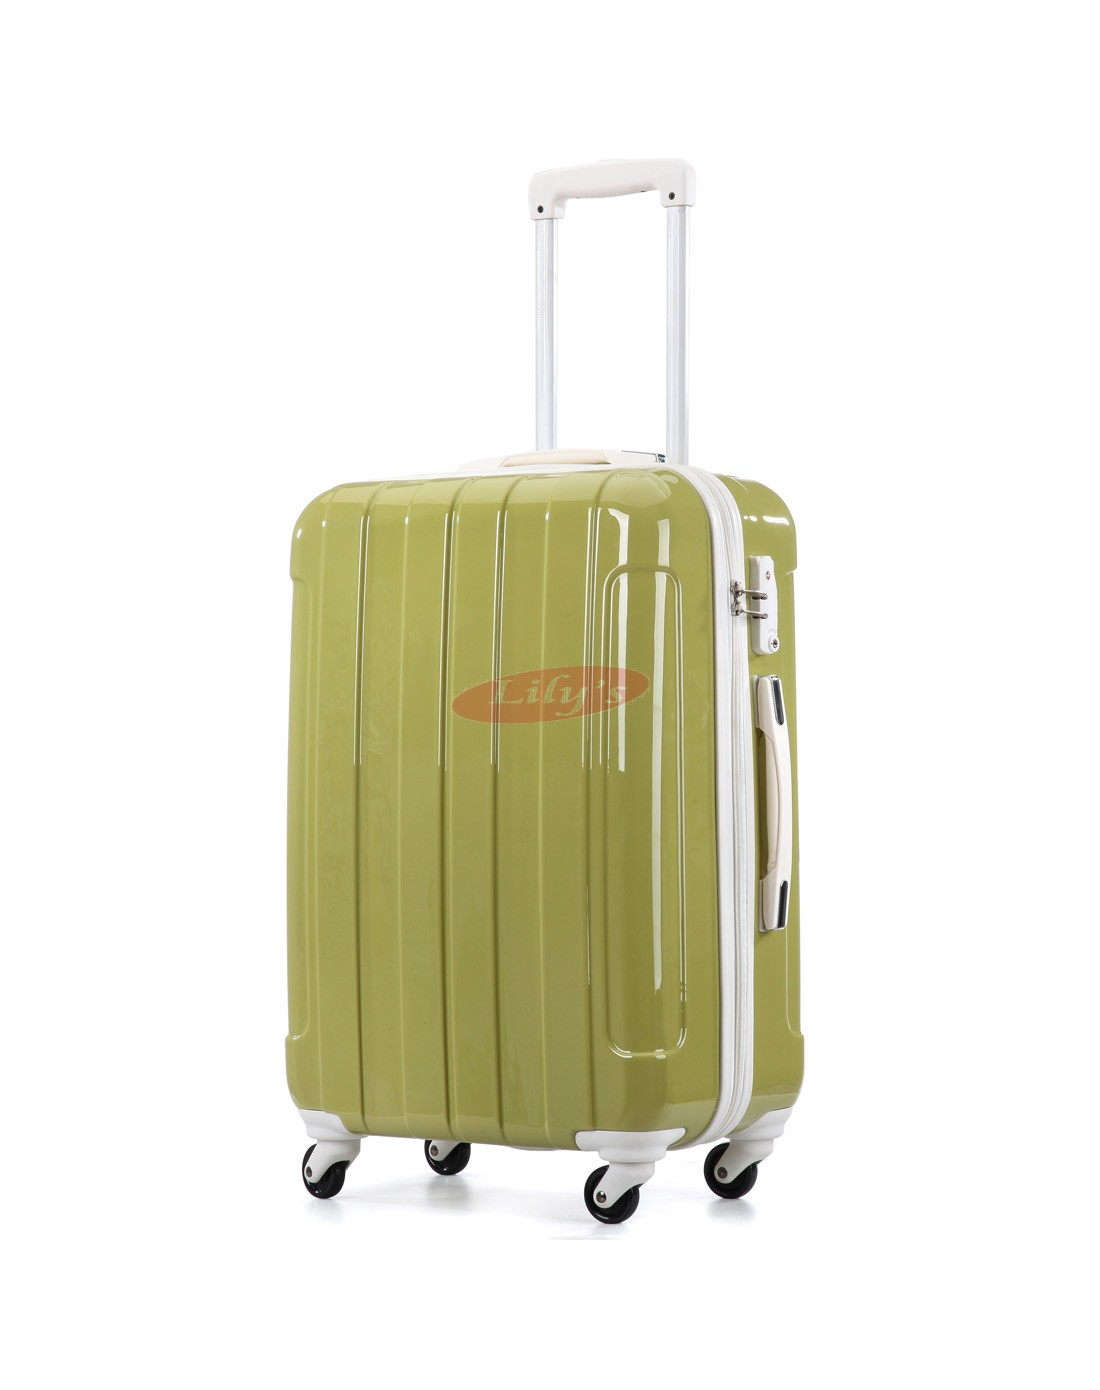 """AIRCROSS Luggage i30 Green Hard Case Trolley Luggage - 26"""""""